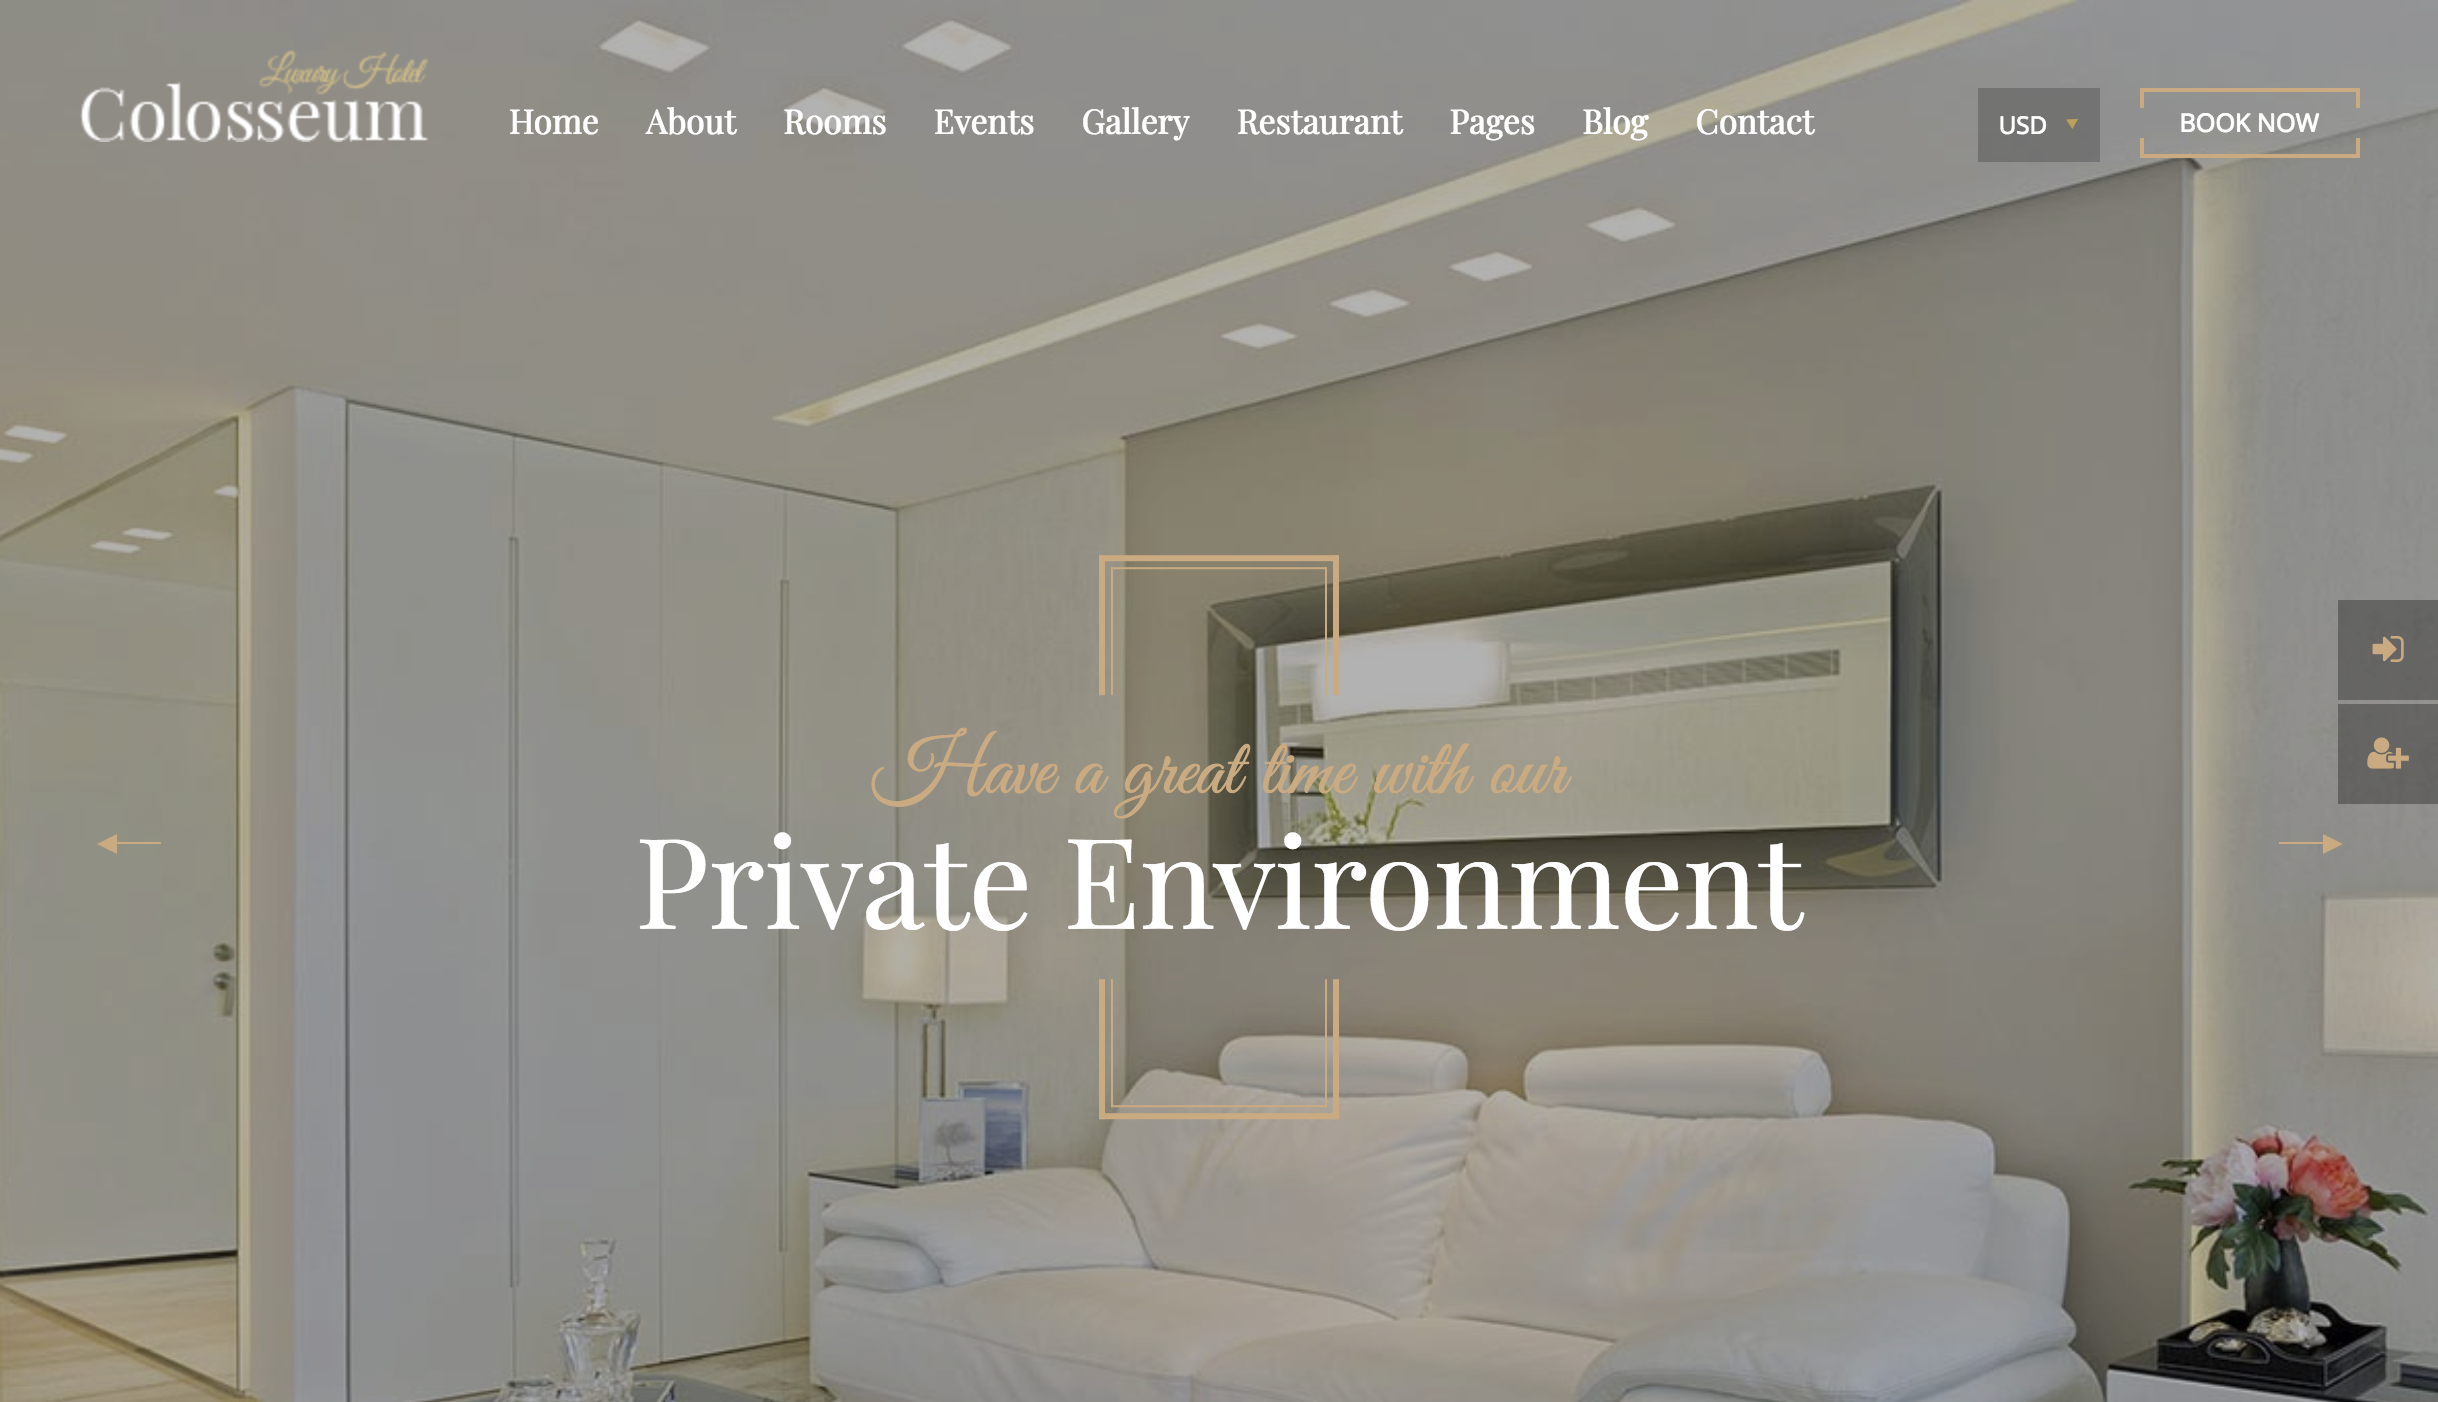 Colosseum Hotel – Premium Hotel Resort WordPress Theme.png